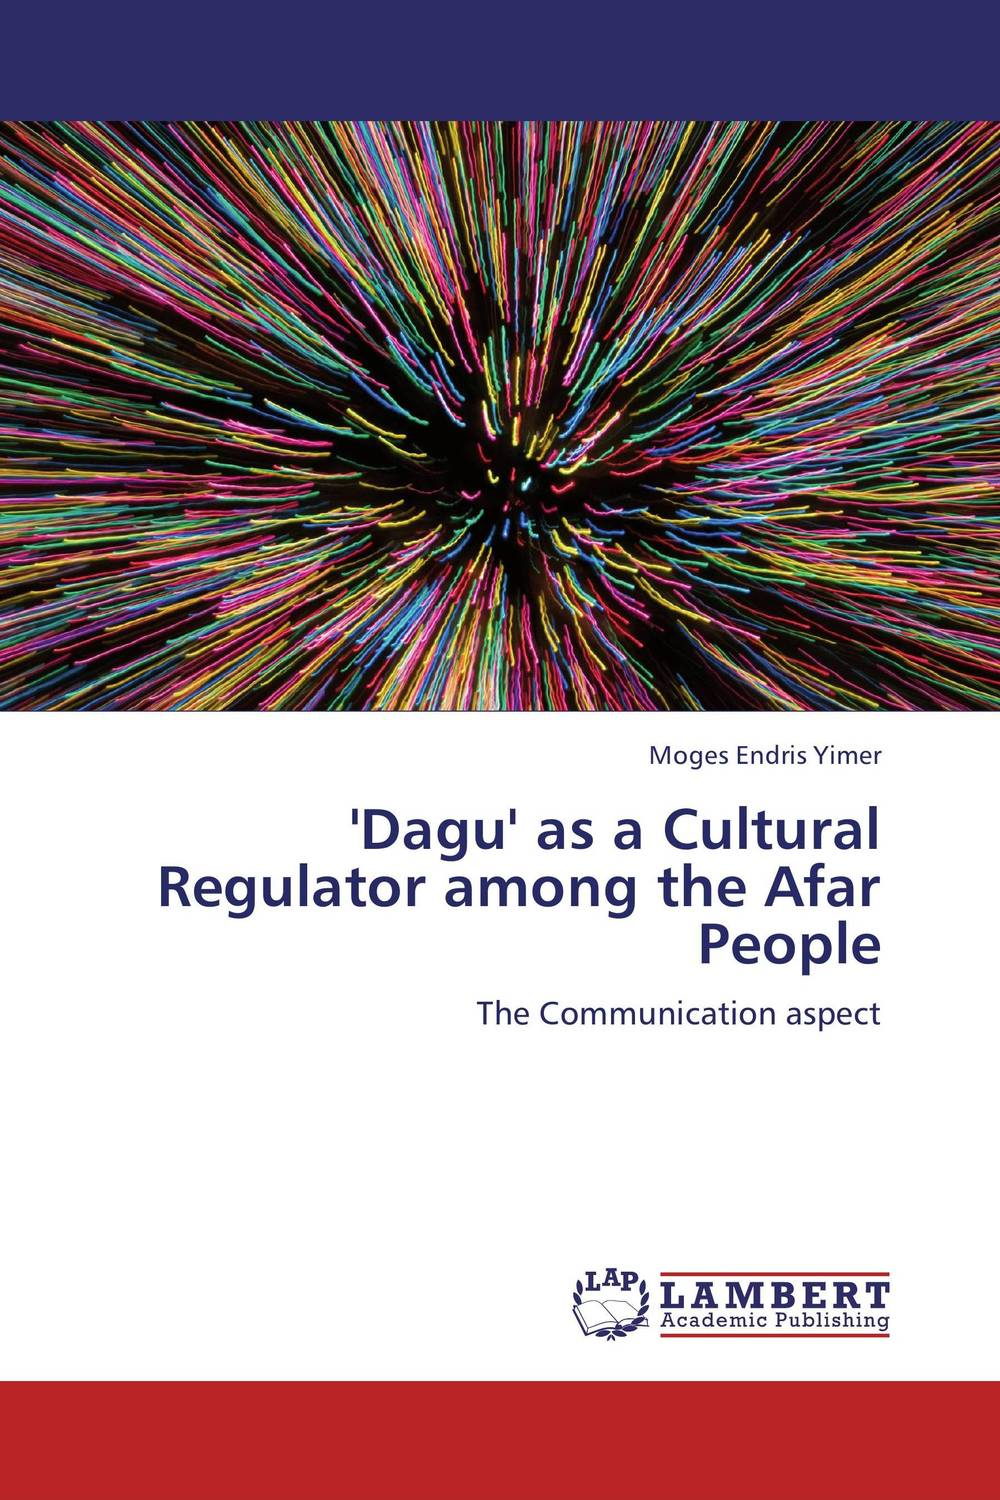 'Dagu' as a Cultural Regulator among the Afar People seeing things as they are